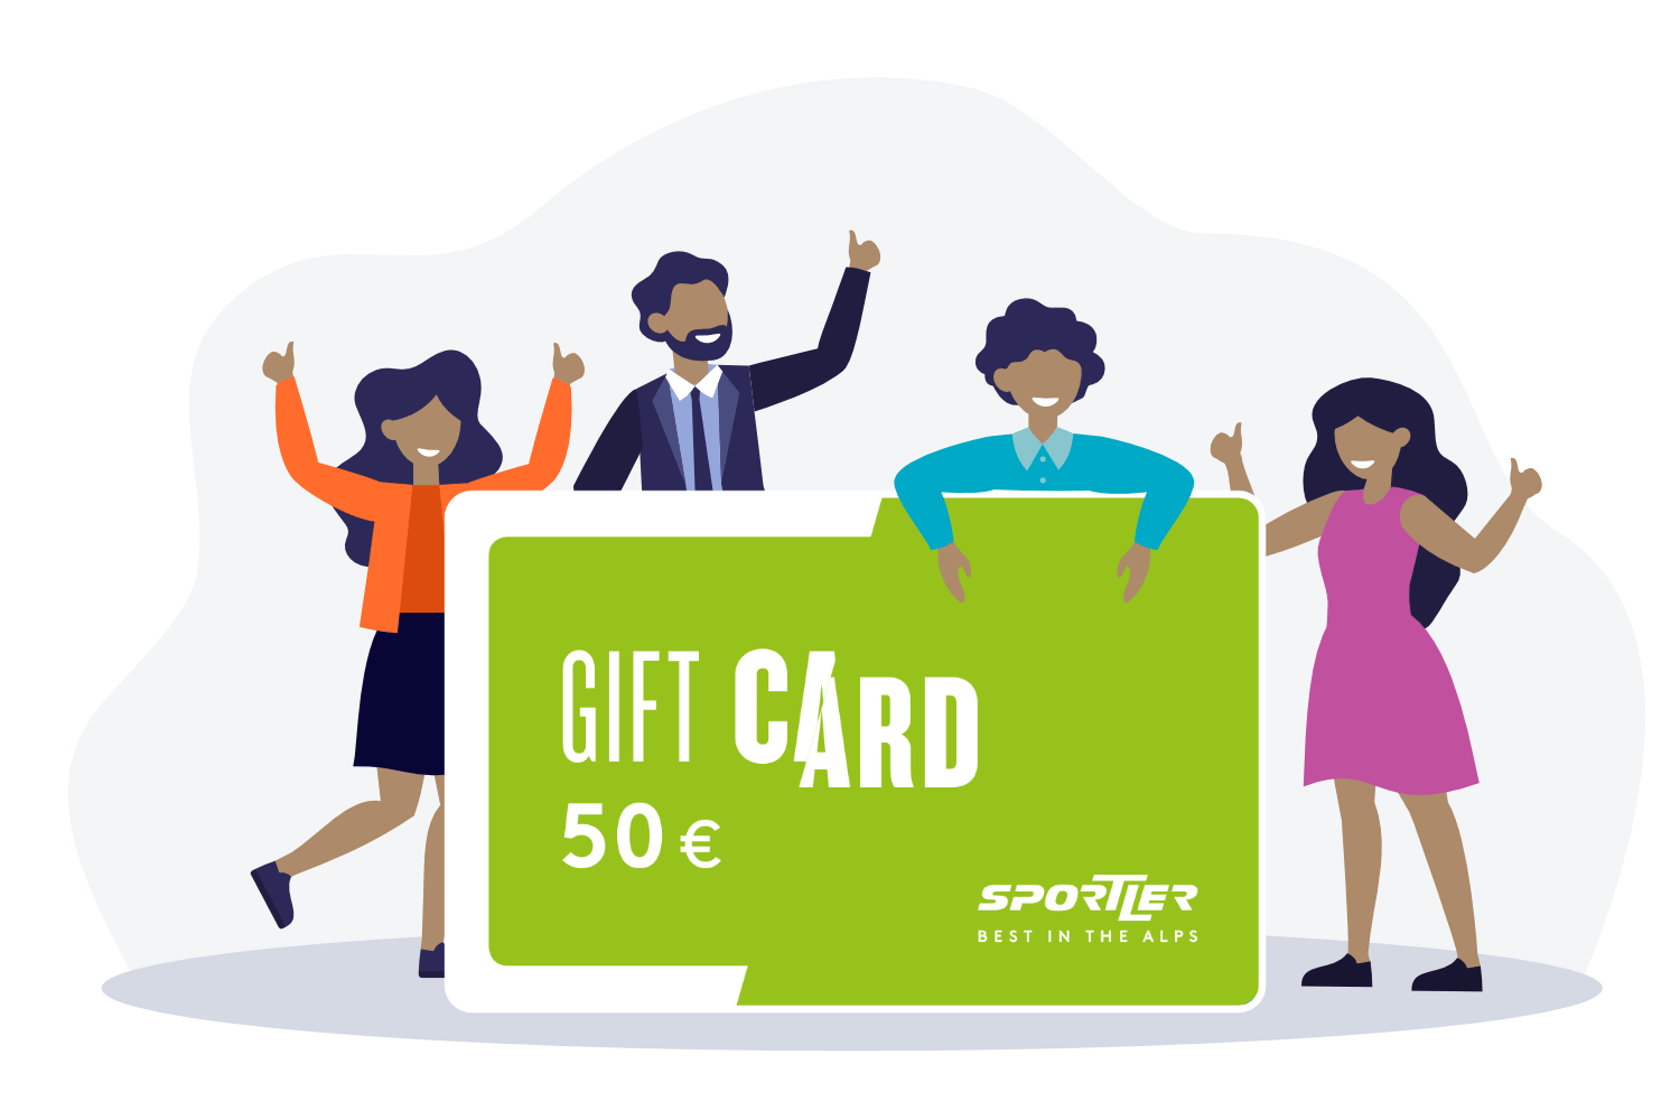 Sportler Gift Card vantaggi per collaboratori